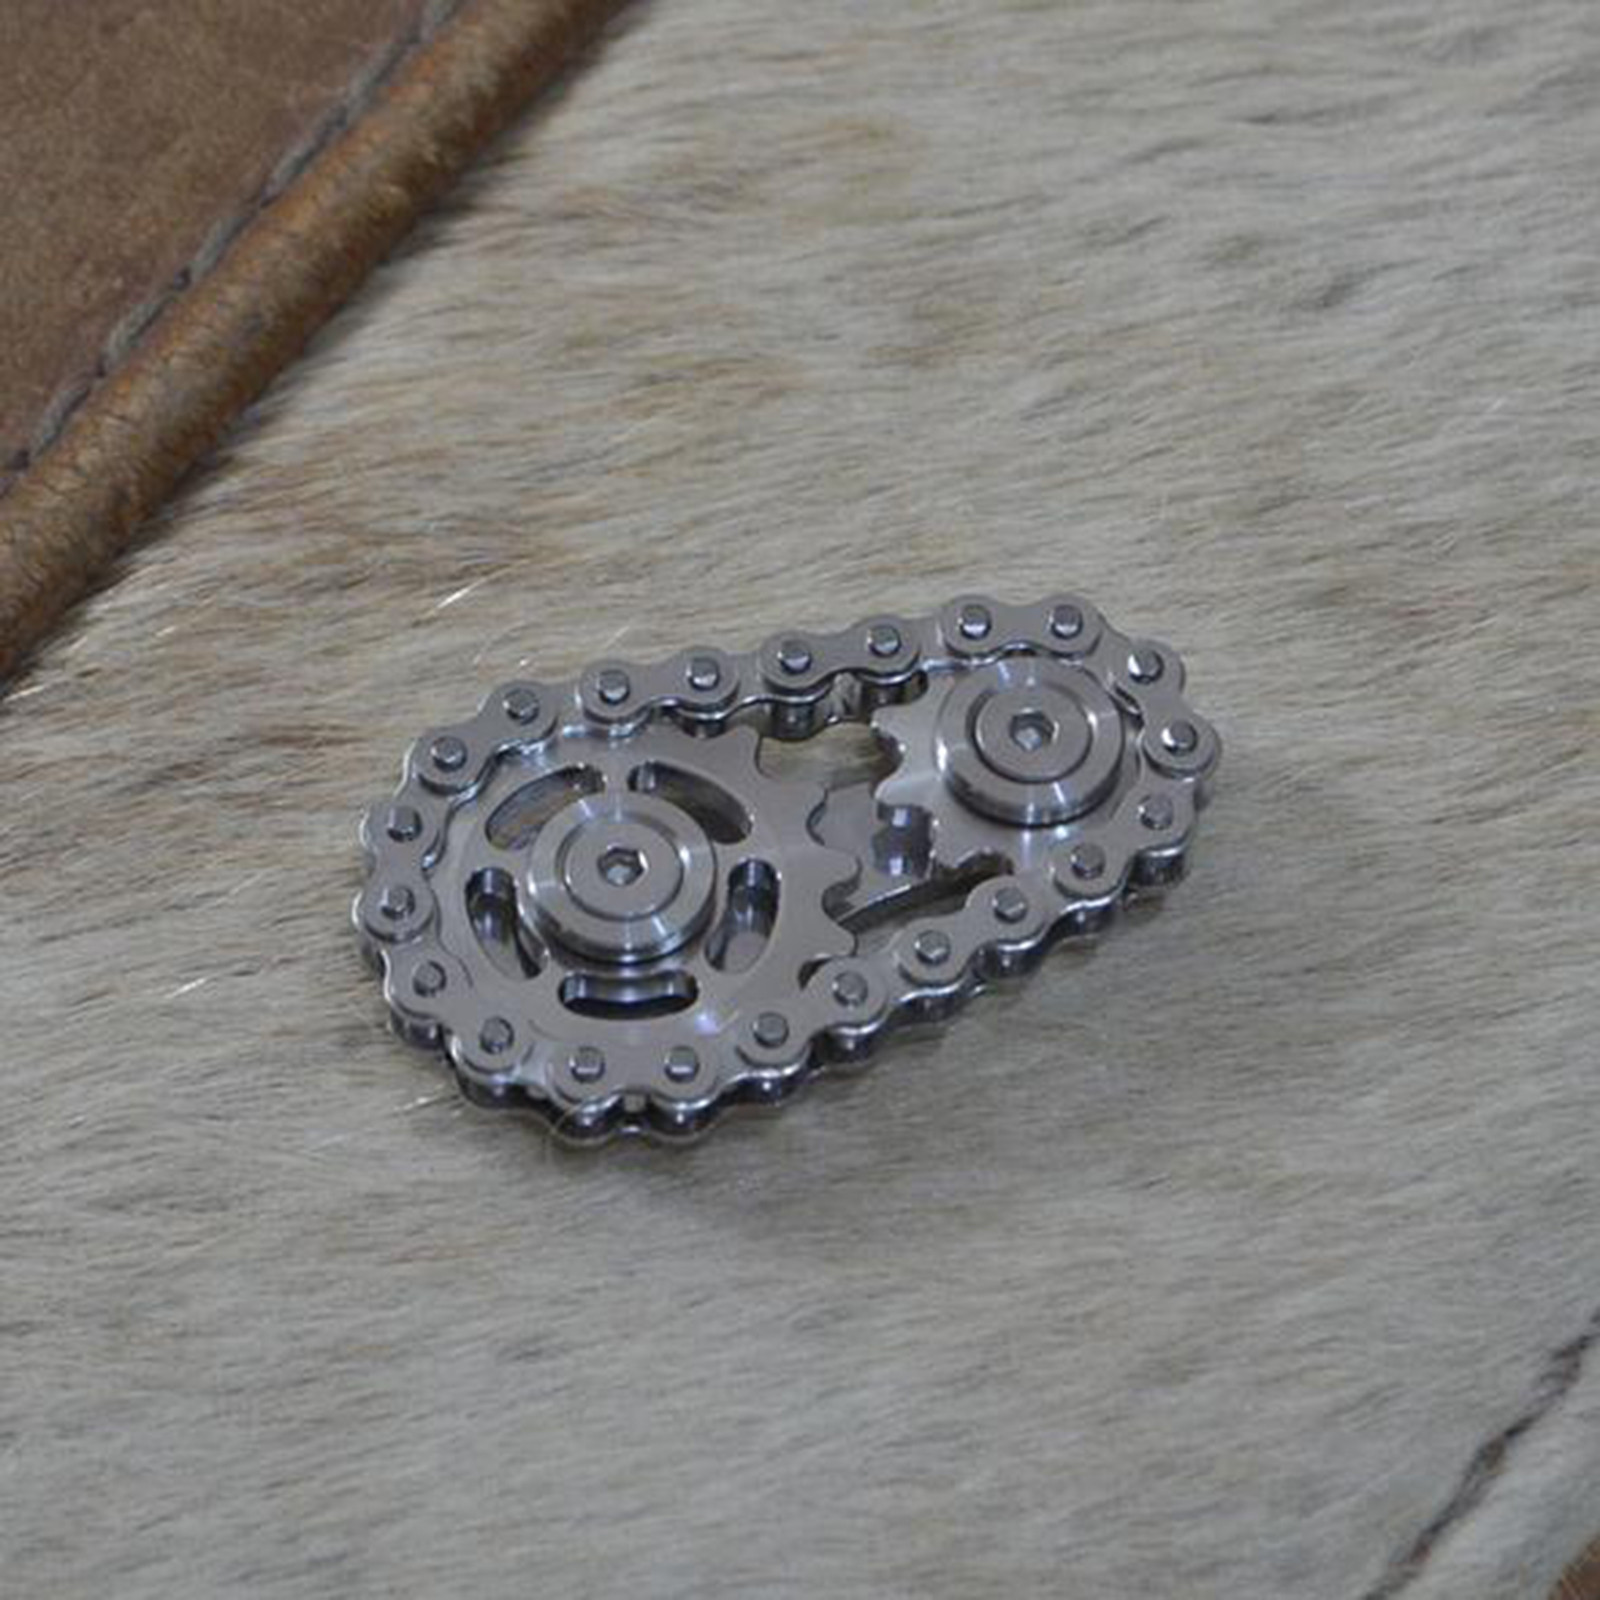 Toys Sprockets Flywheel Fingertip Gyro Sprockets Chains Metal Toy Gear Chain Gyro Sproket Roadbike Spinner Education Toys Gifts enlarge